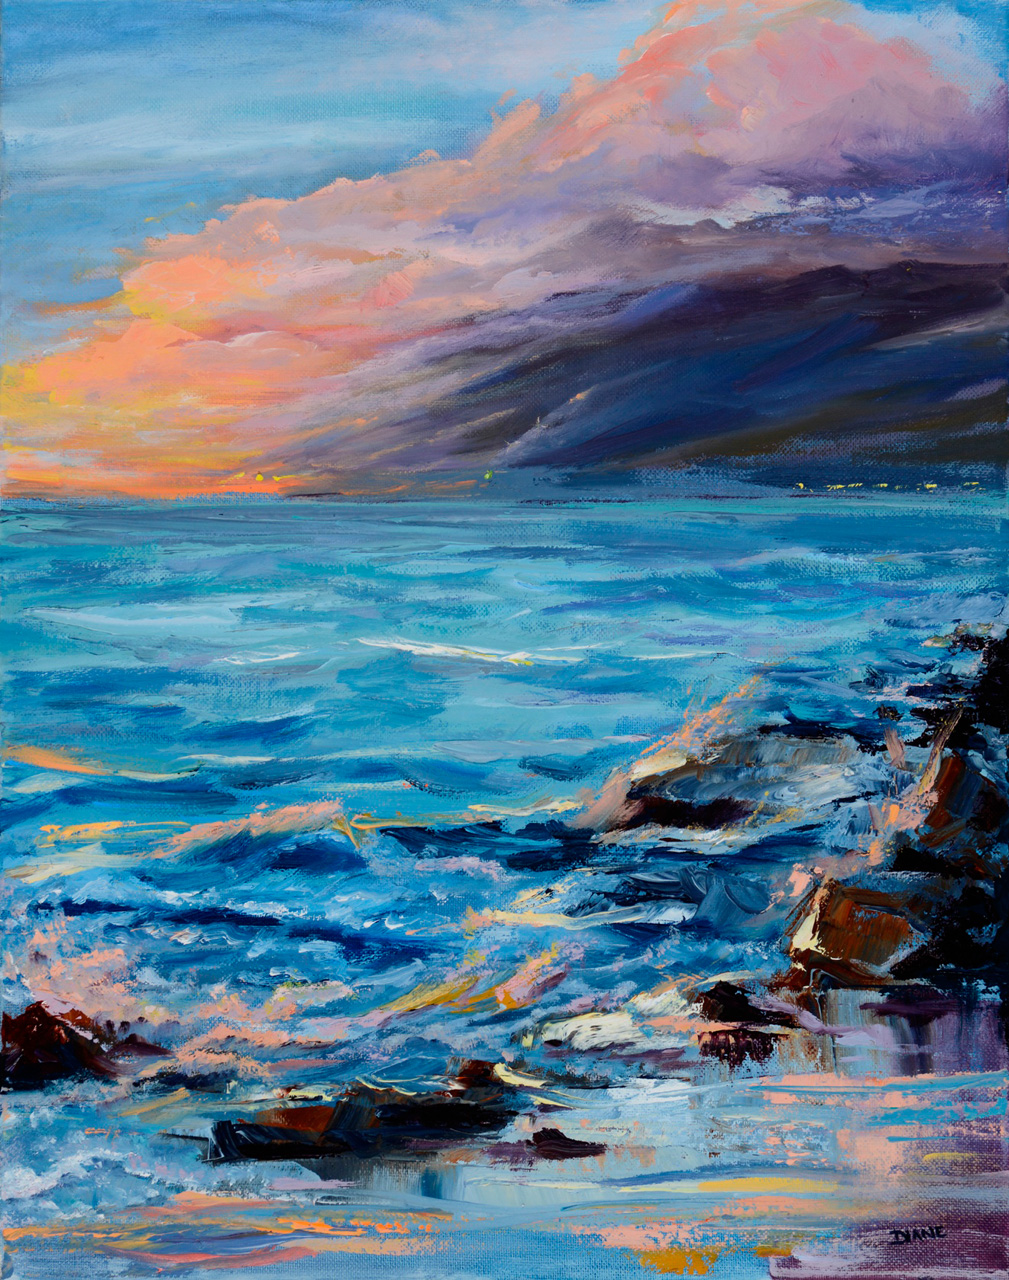 'Sunset Nocturn Charley Young Beach' 16 x 20 Oil on Canvas Diane Appler